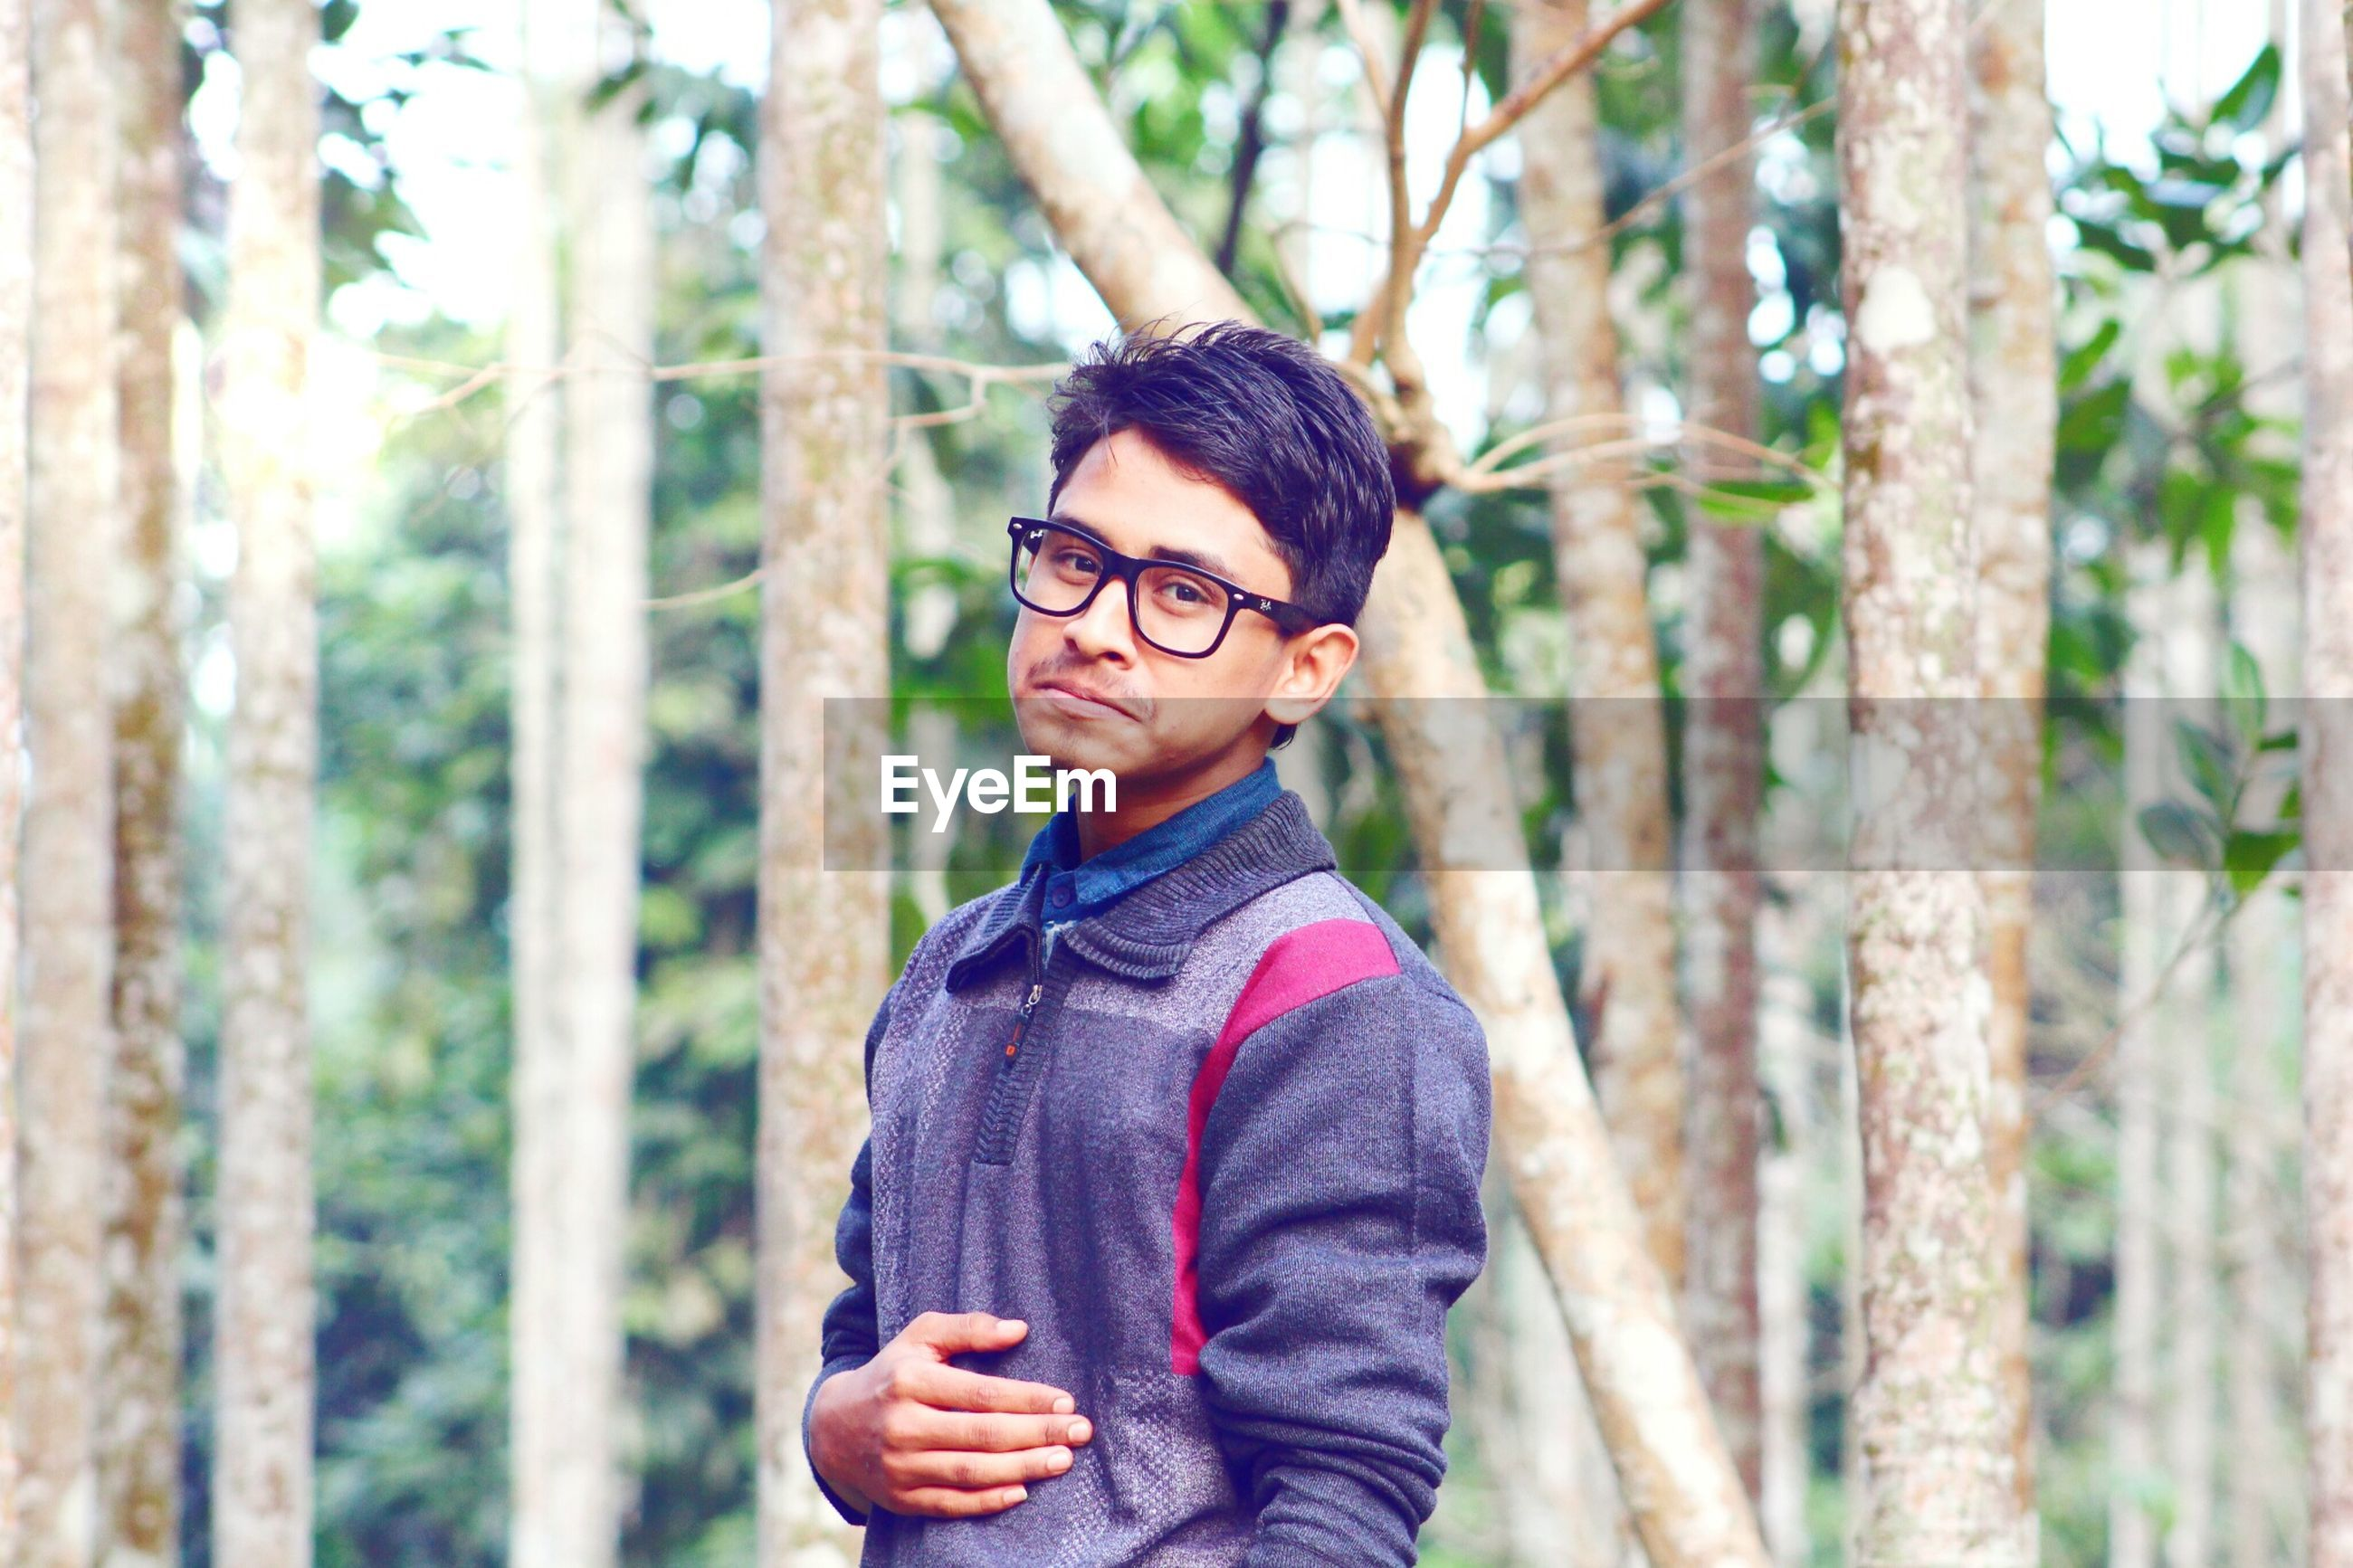 young adult, looking at camera, person, portrait, lifestyles, focus on foreground, casual clothing, leisure activity, front view, smiling, young men, waist up, sunglasses, standing, happiness, tree